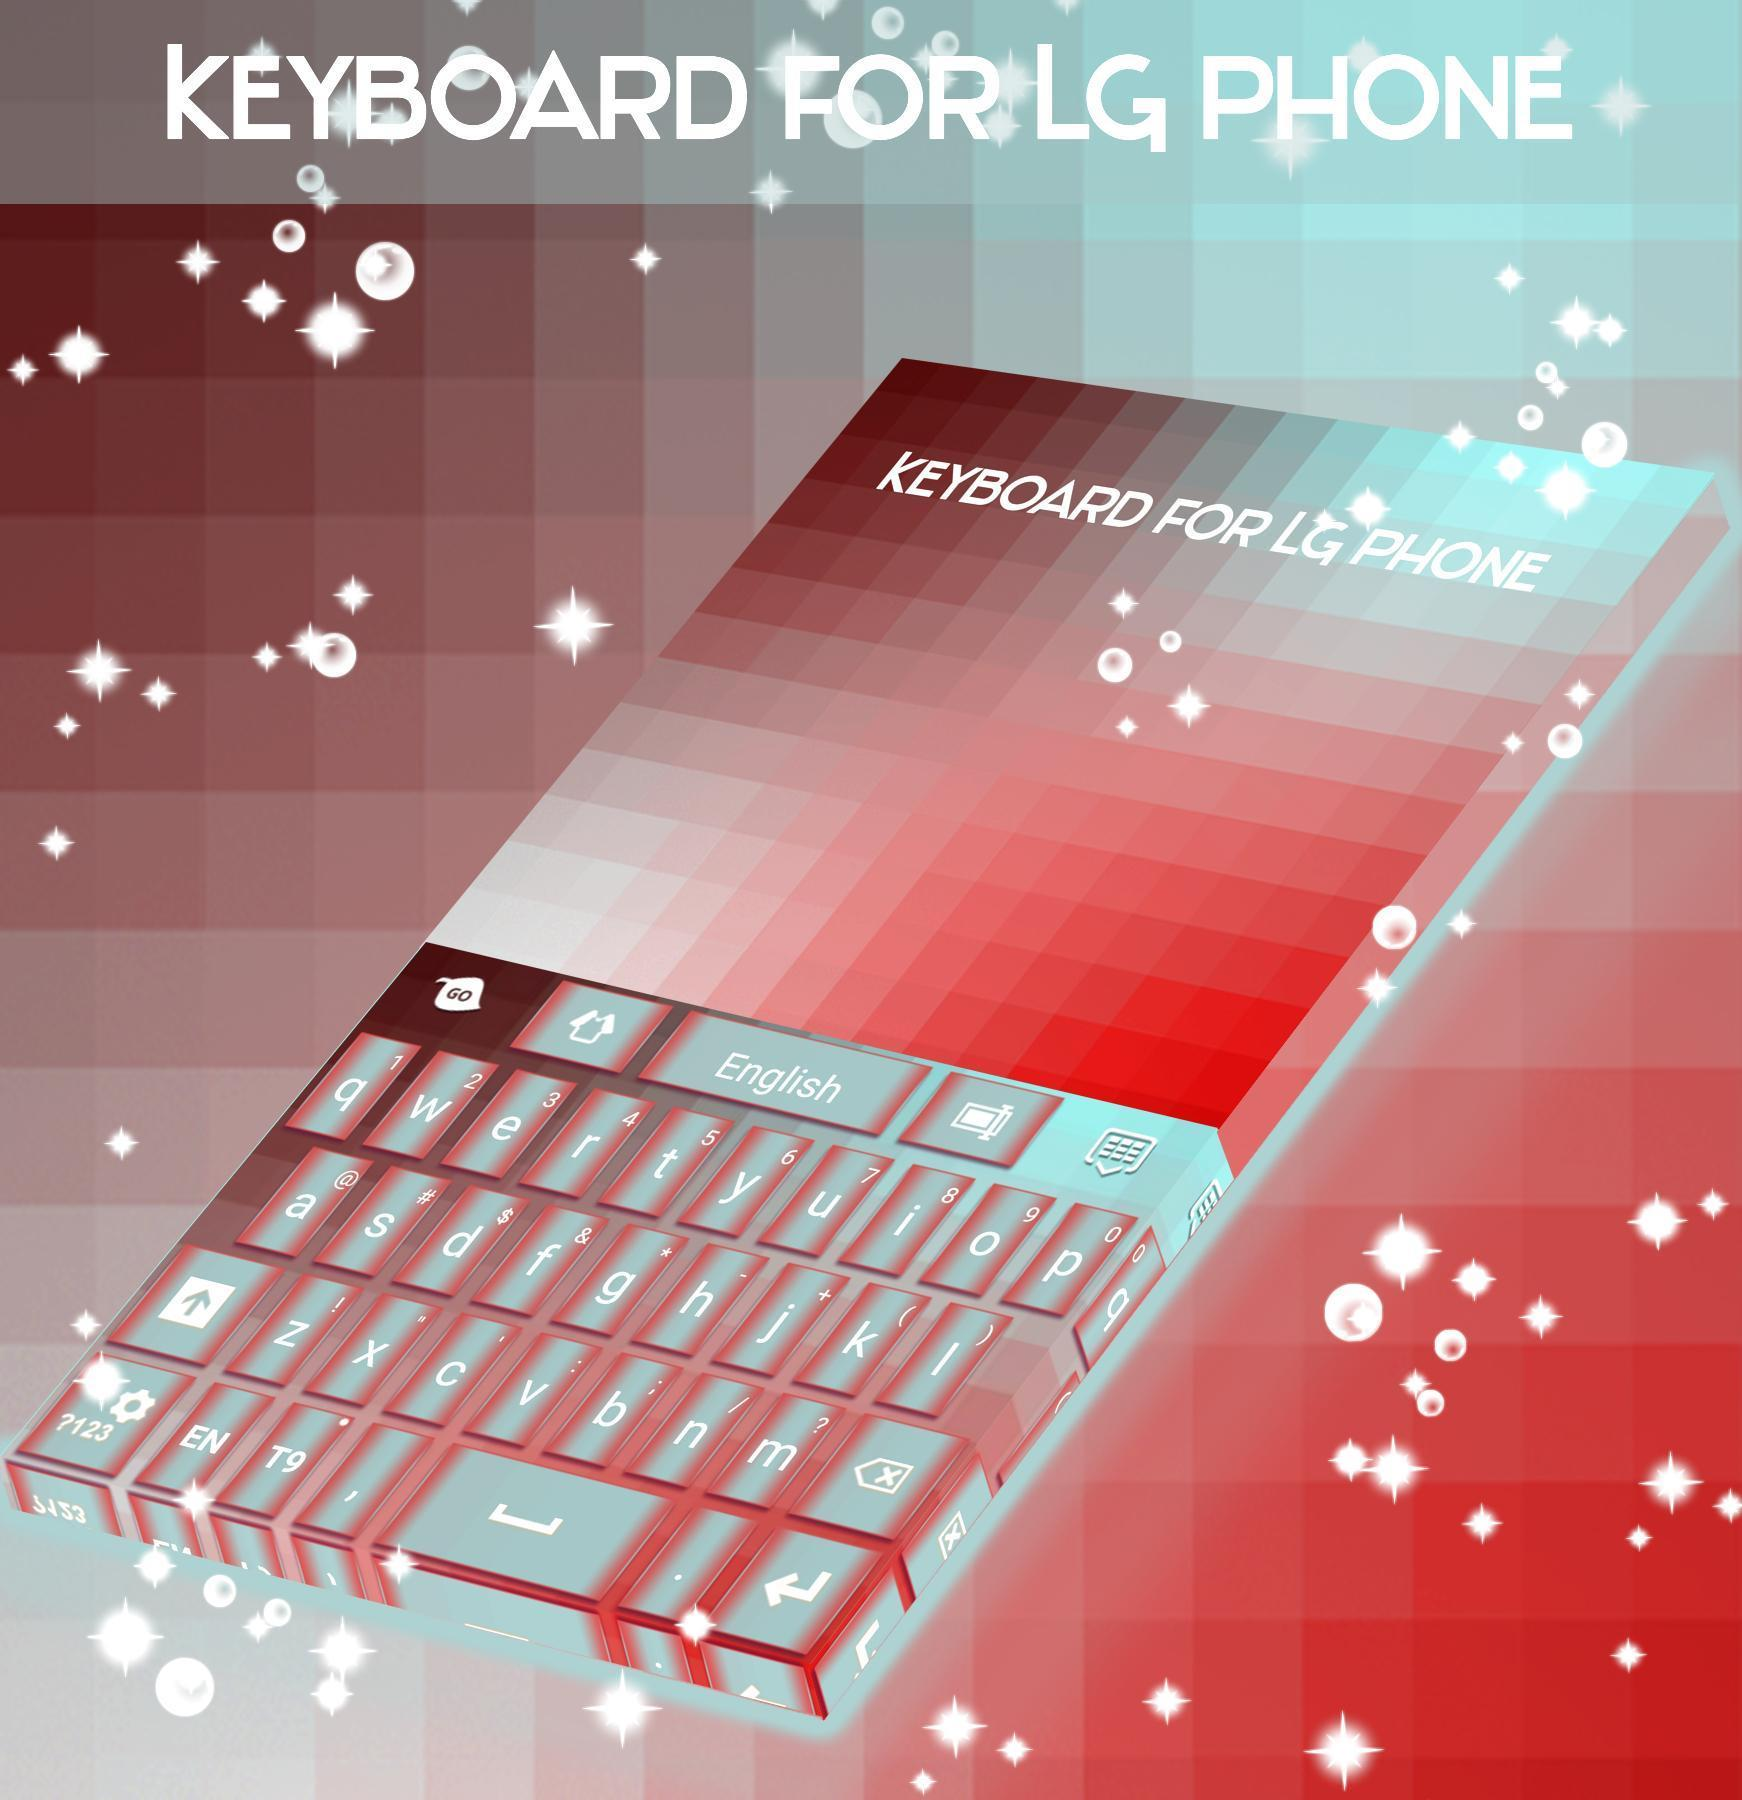 Keyboard for LG phone for Android - APK Download